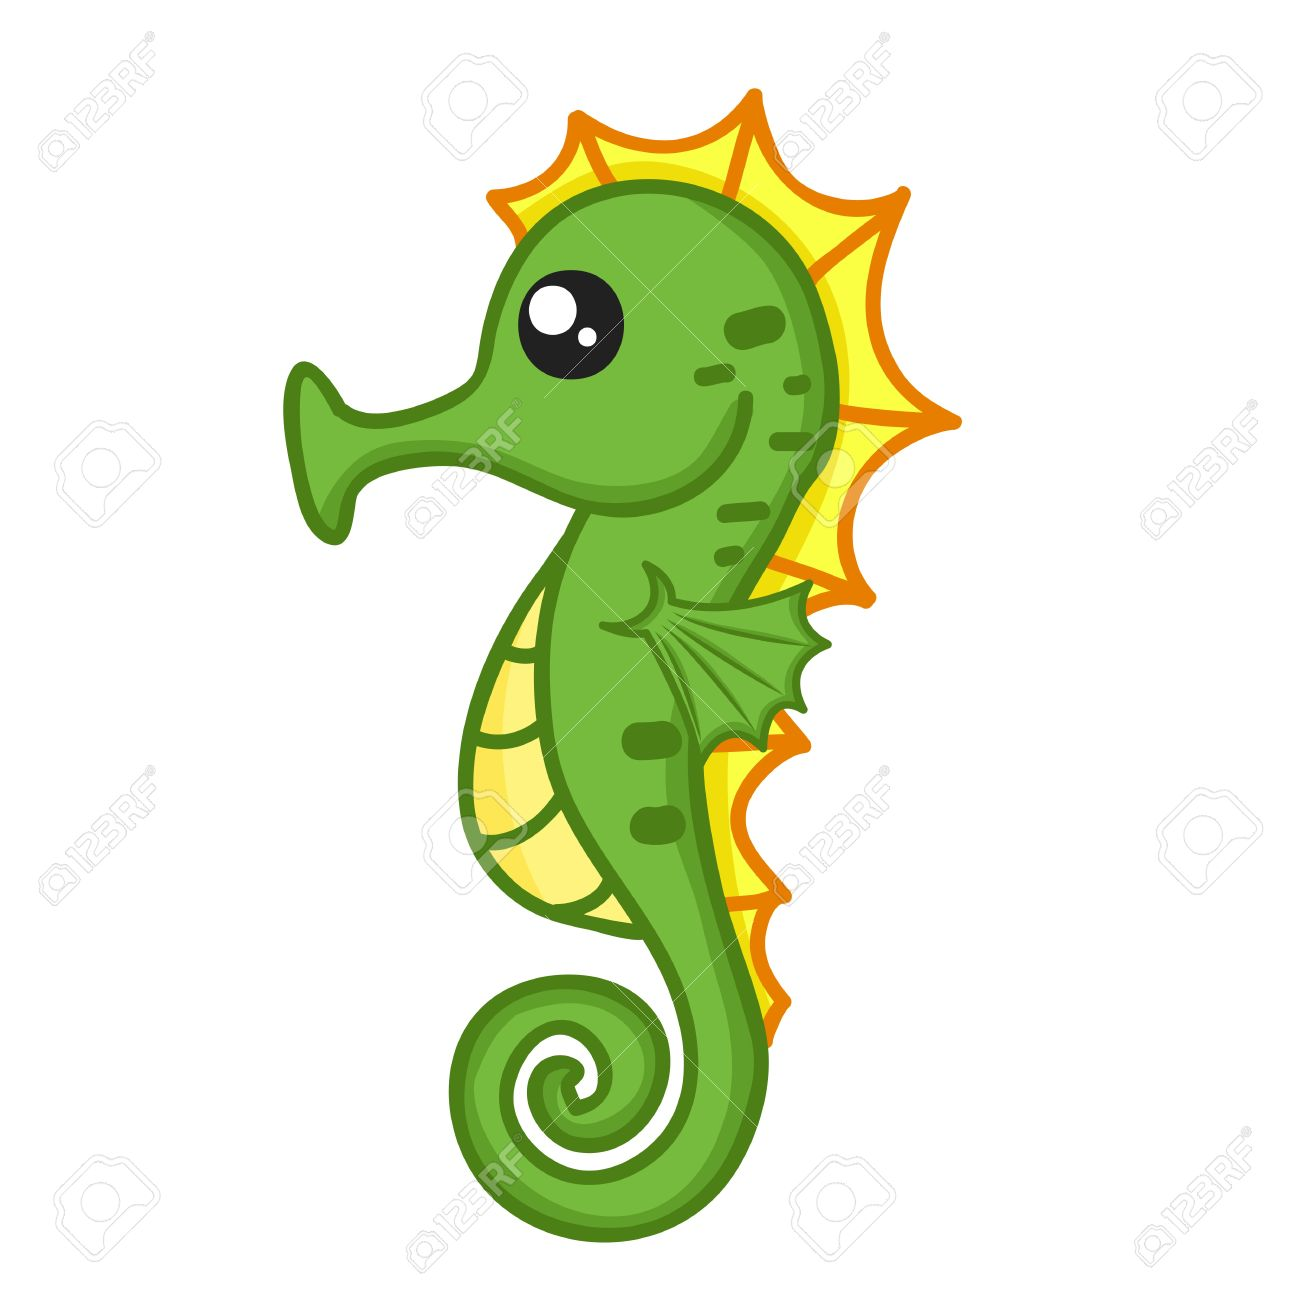 Seahorse clipart #14, Download drawings